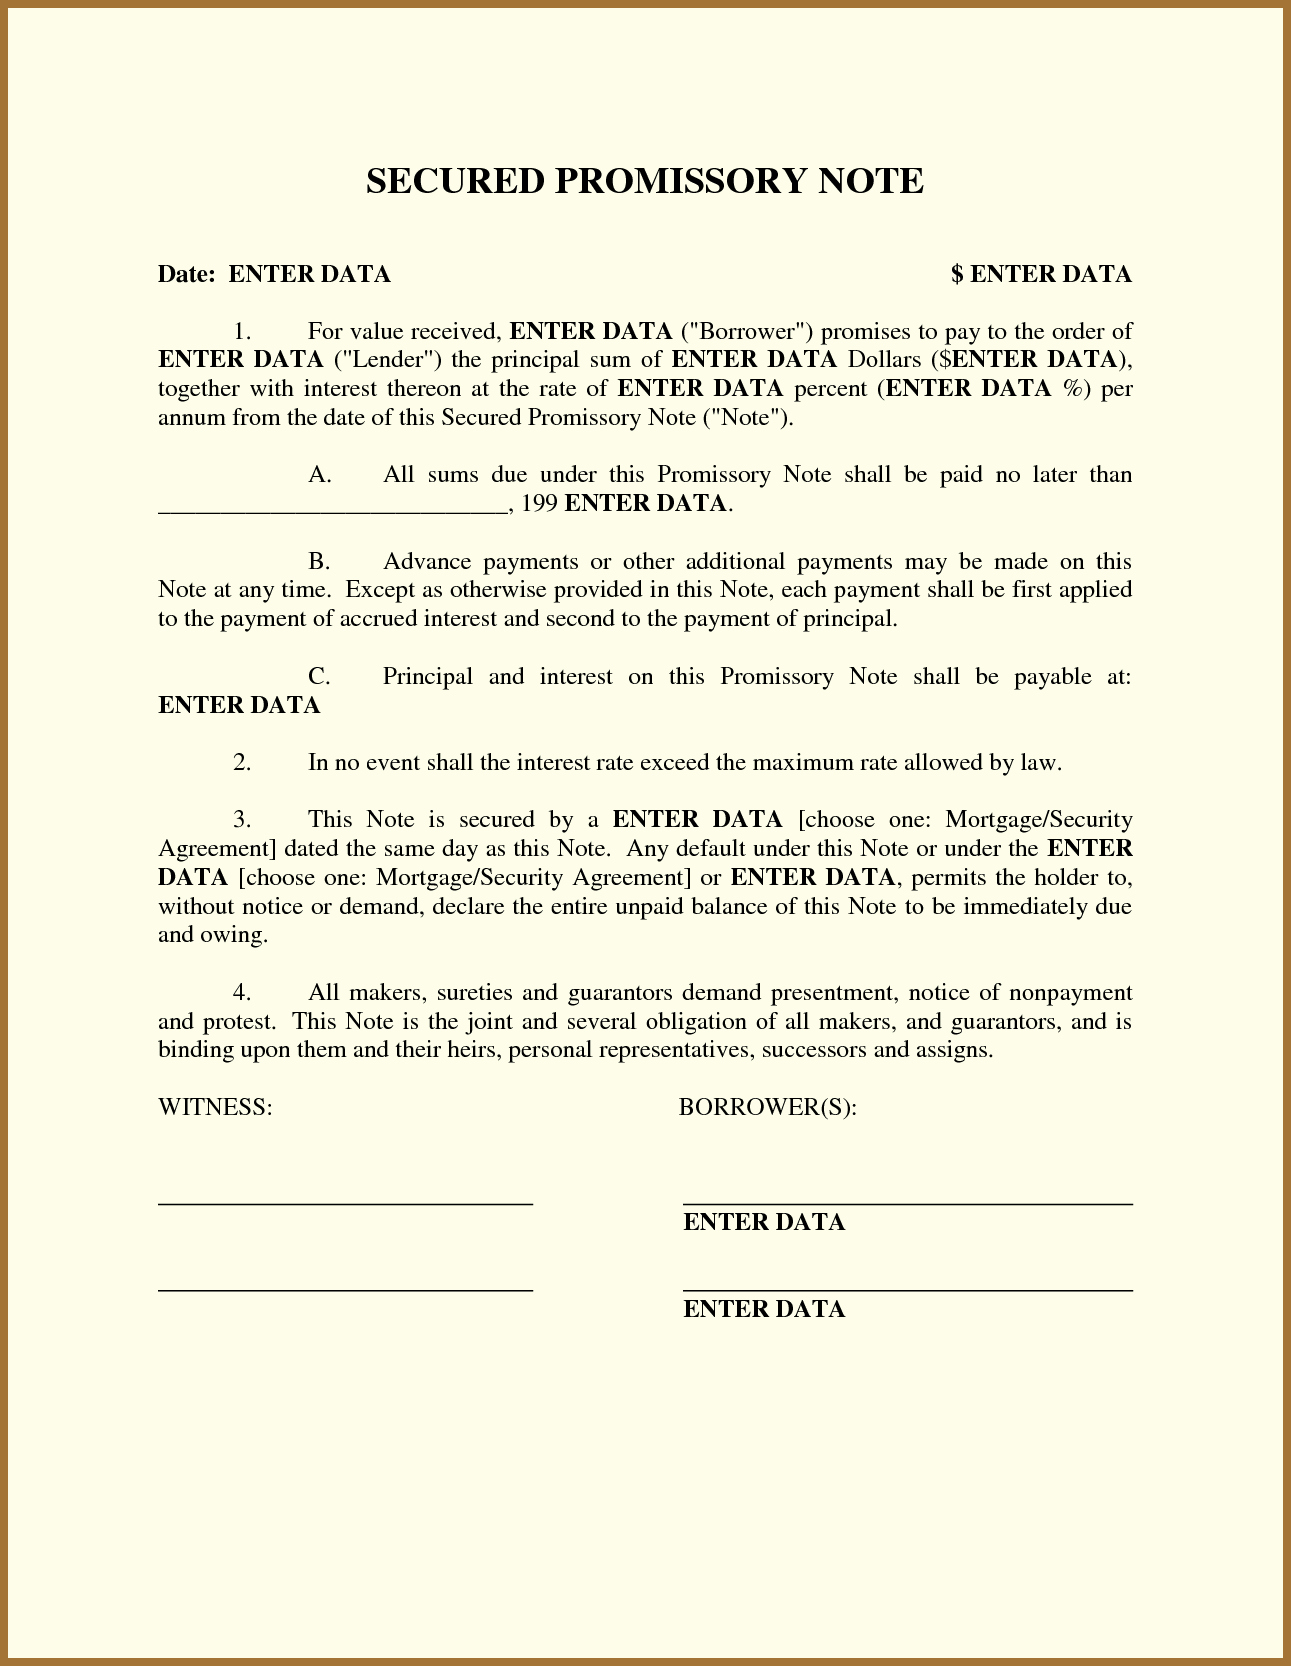 Secured Promissory Note Template Pdf Awesome Free Promissory Note Template Word Pdf